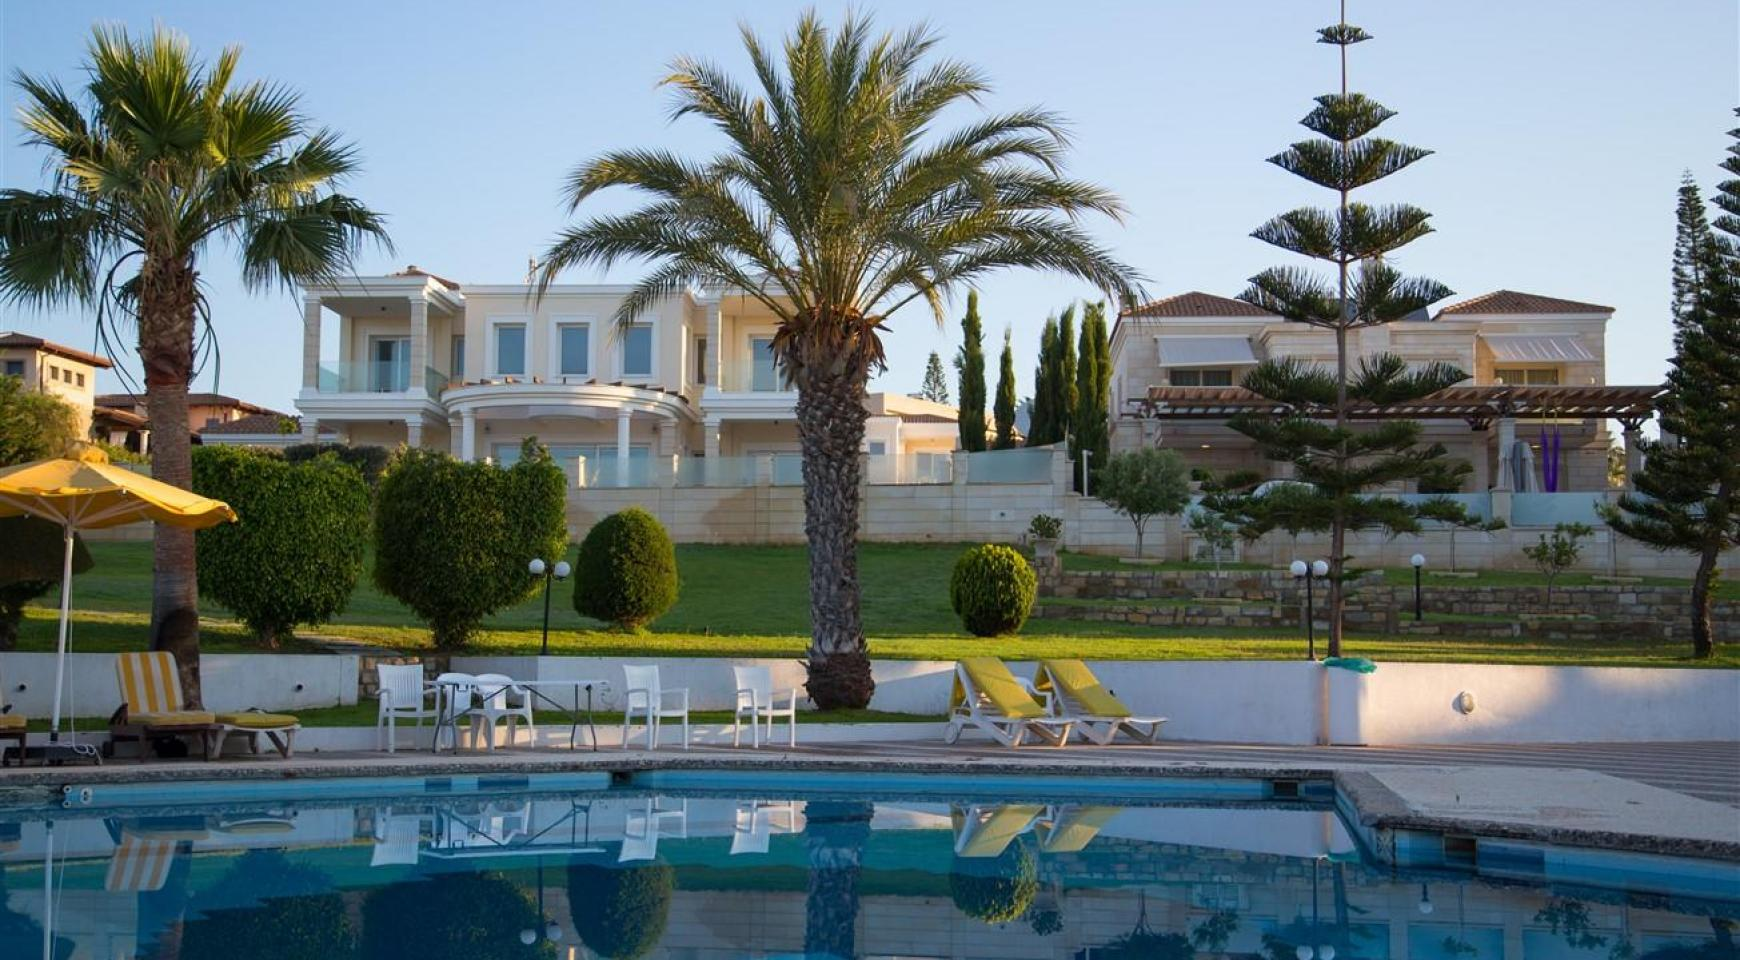 3 Bedroom Apartment in Thera Complex by the Sea - 1